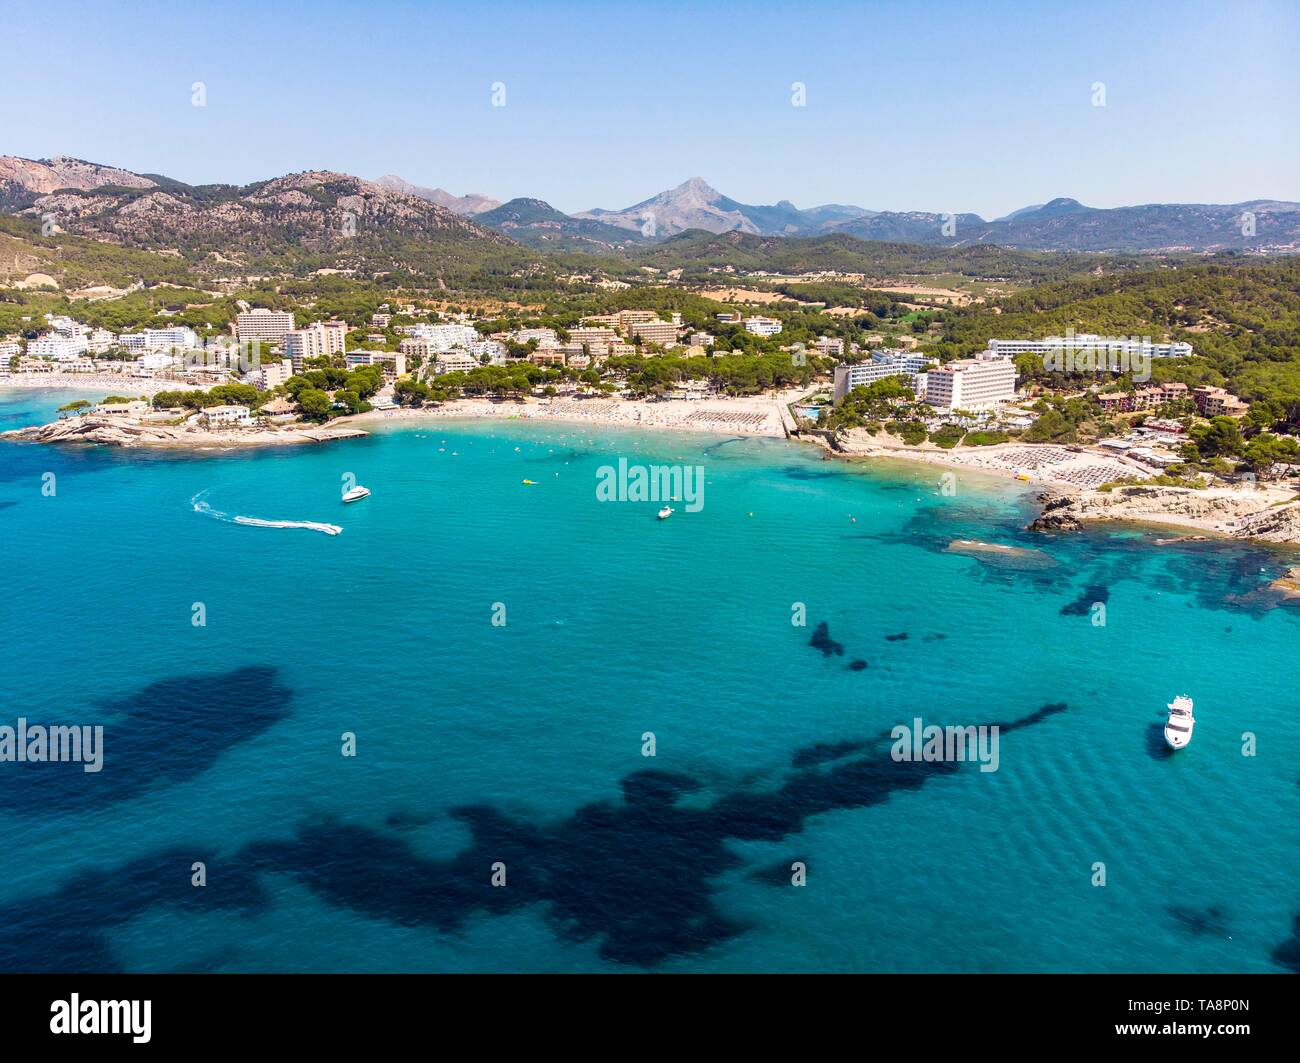 Aerial view, view of tourist town Peguera with hotels and